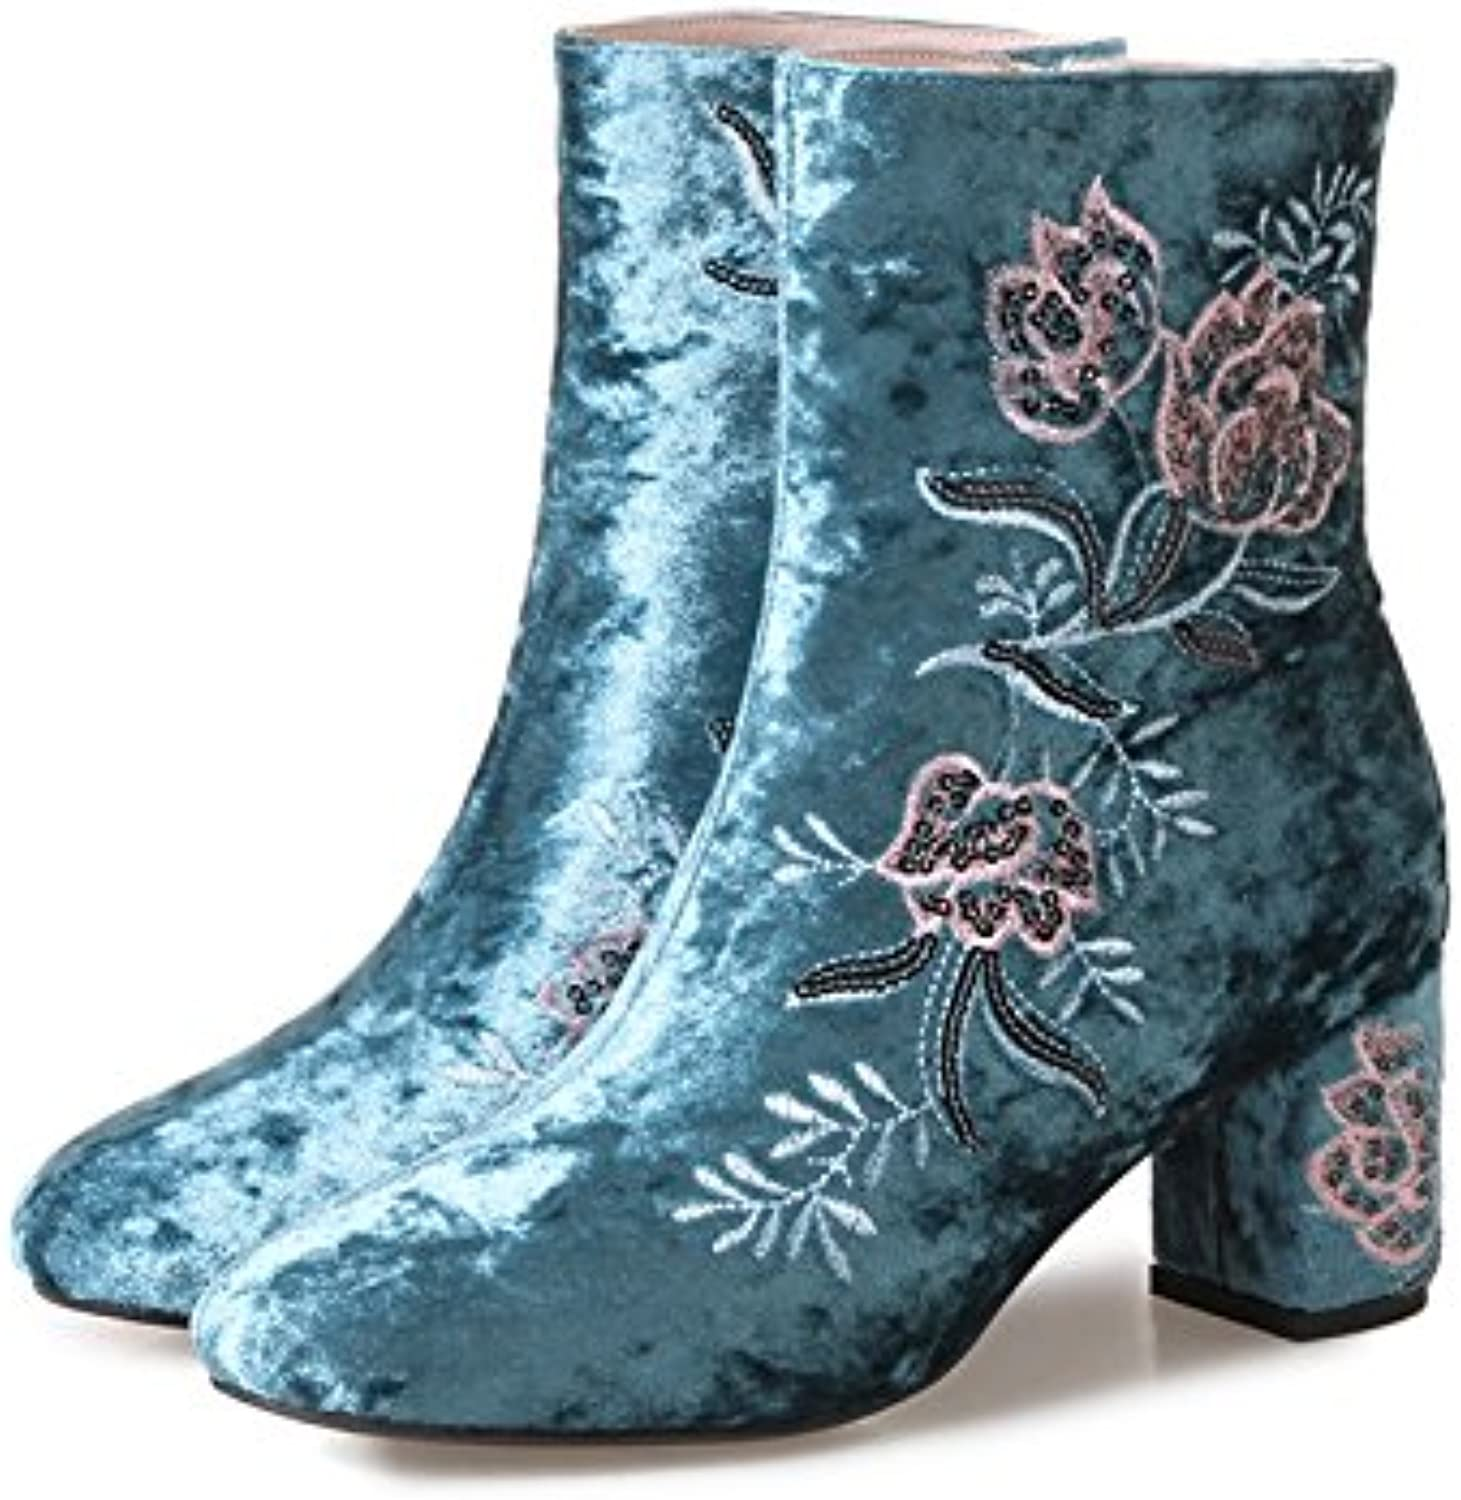 SDKIR-Autumn and winter embroidered folk style high-heeled boots round West boots shoes retro velvet embroidered cheongsam